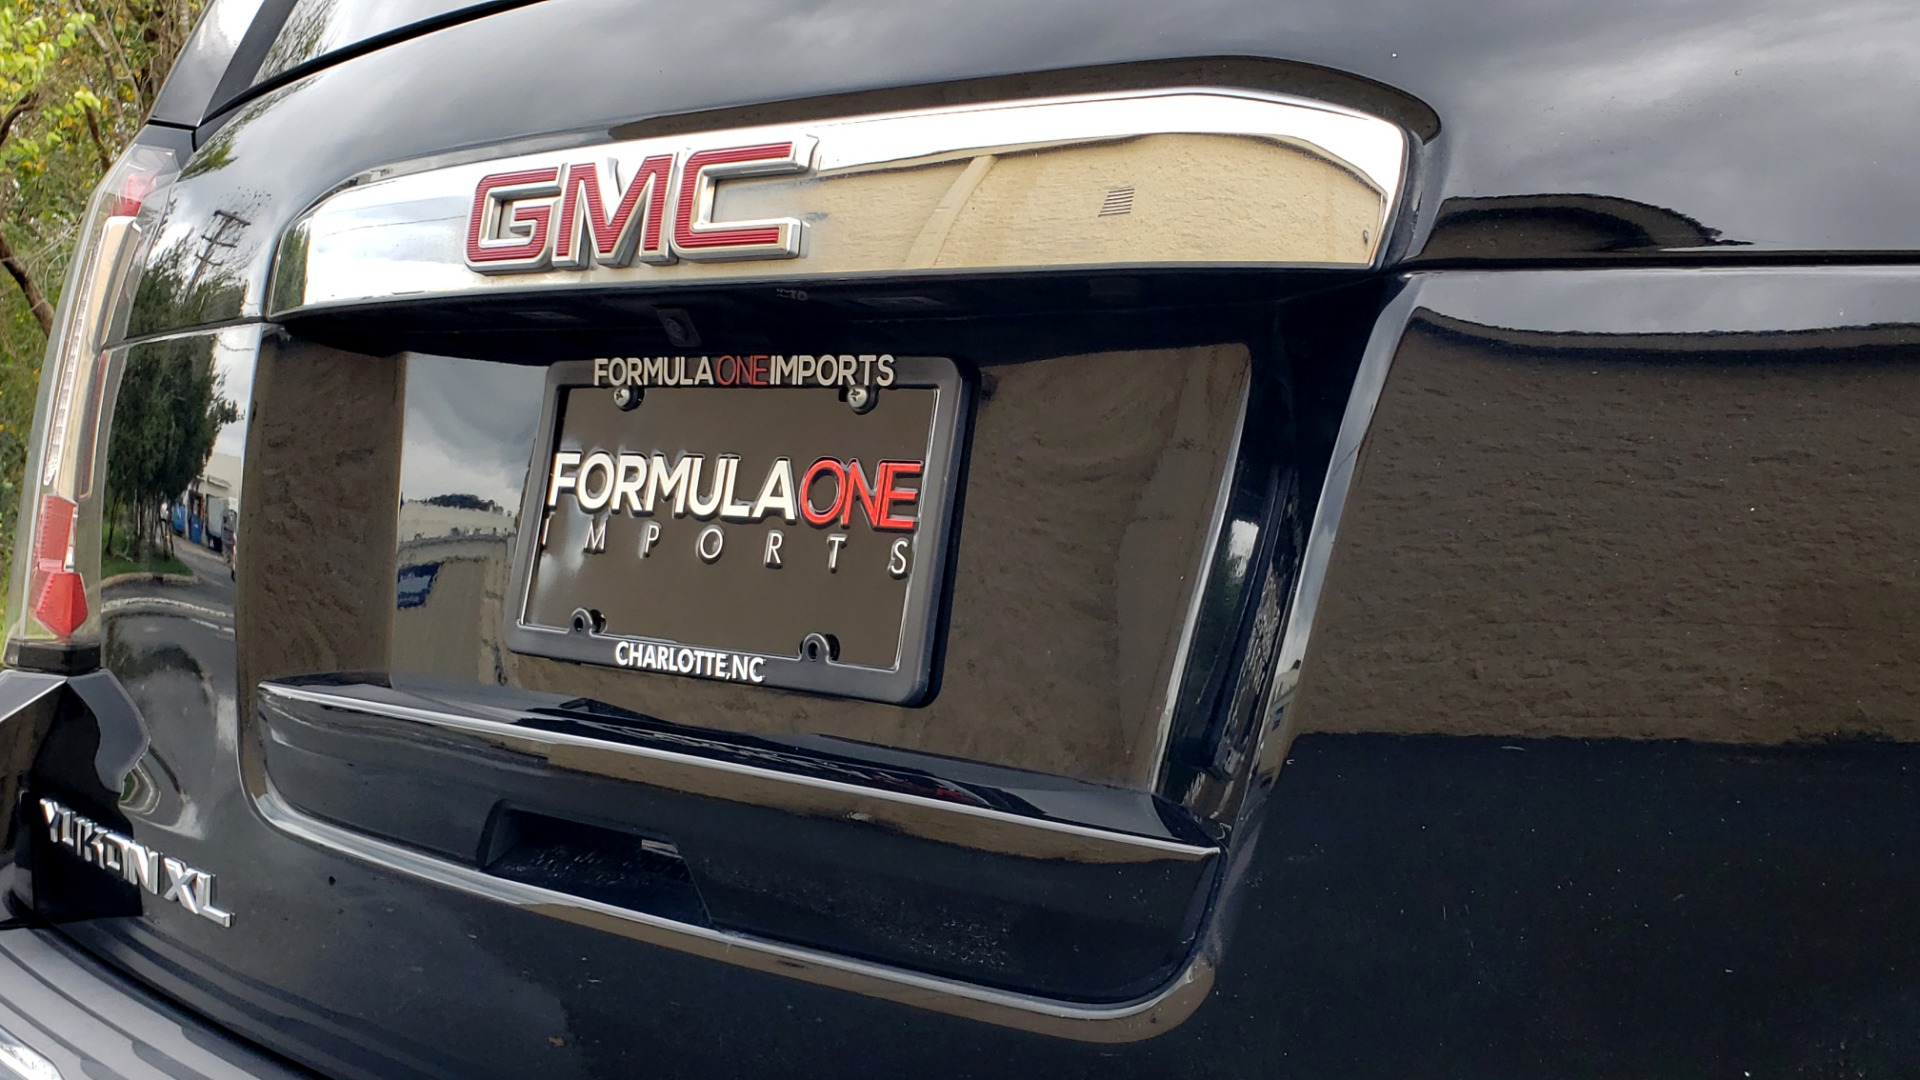 Used 2017 GMC YUKON XL DENALI 4WD / NAV / SUNROOF / ENT / 3-ROWS / BOSE / REARVIEW for sale Sold at Formula Imports in Charlotte NC 28227 31